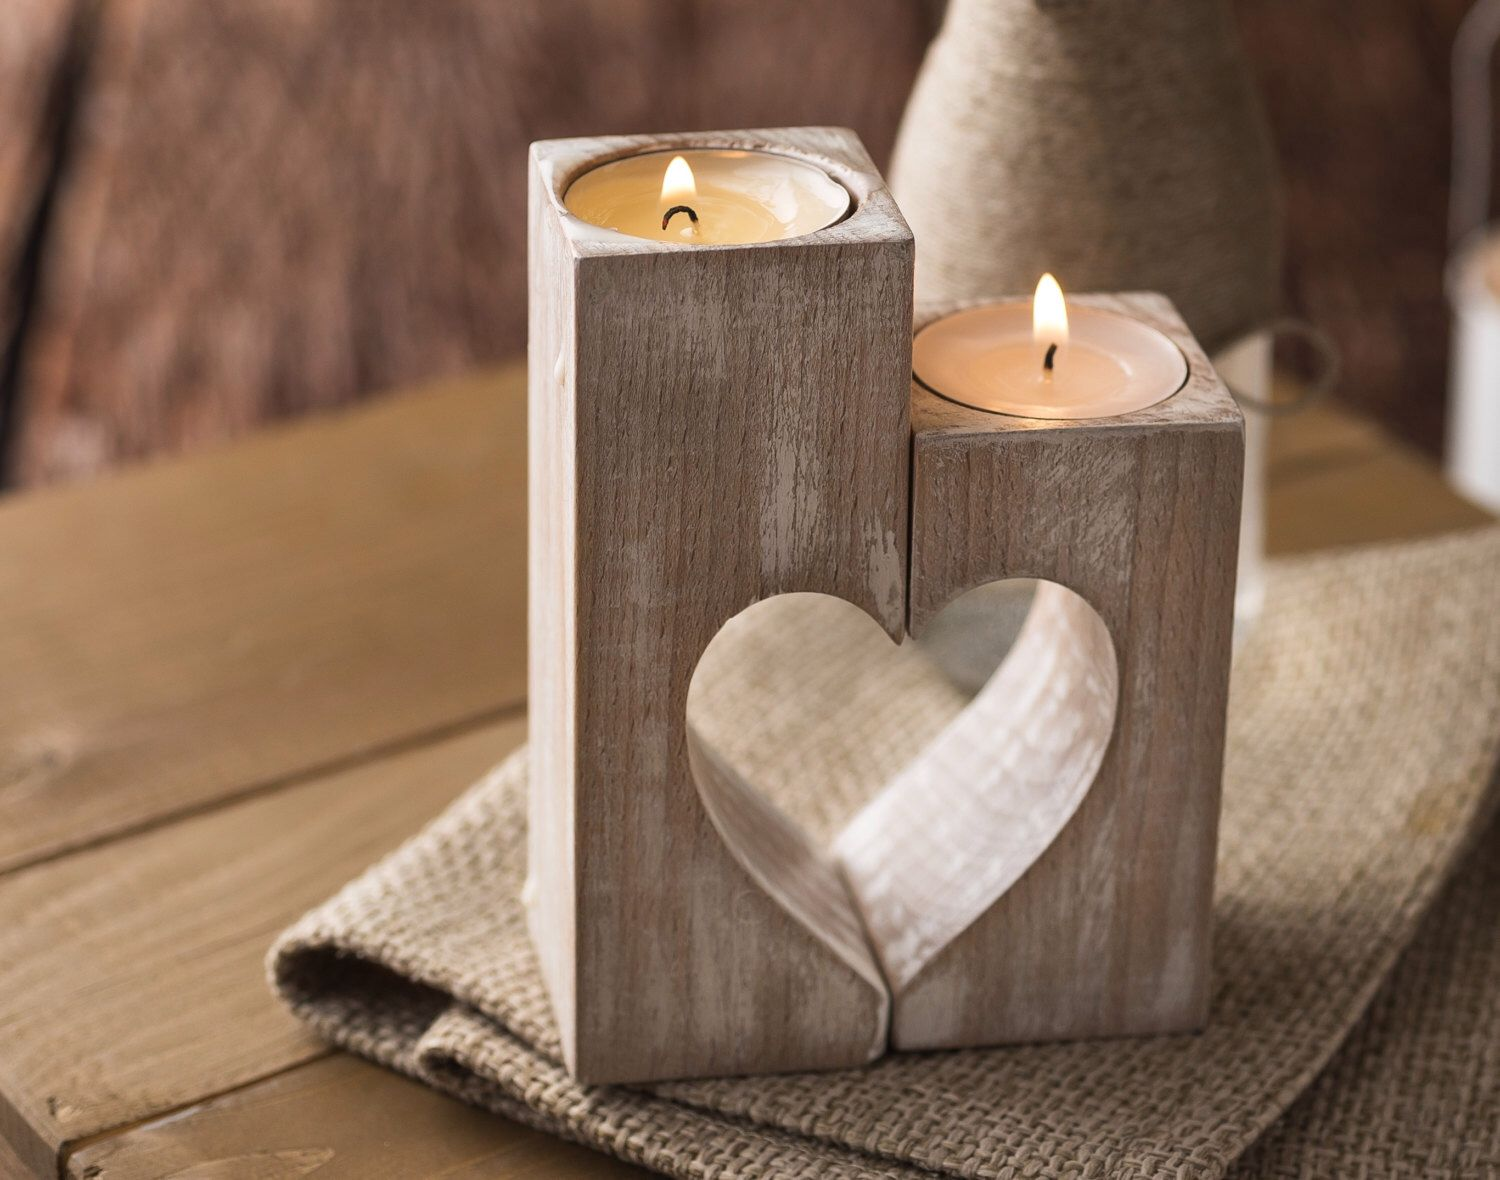 wedding gift card holders%0A Wooden decorative candle holders Rustic heart light candle holders  Christmas gift Family Birthday Wedding gift ideas Home decor Love candles